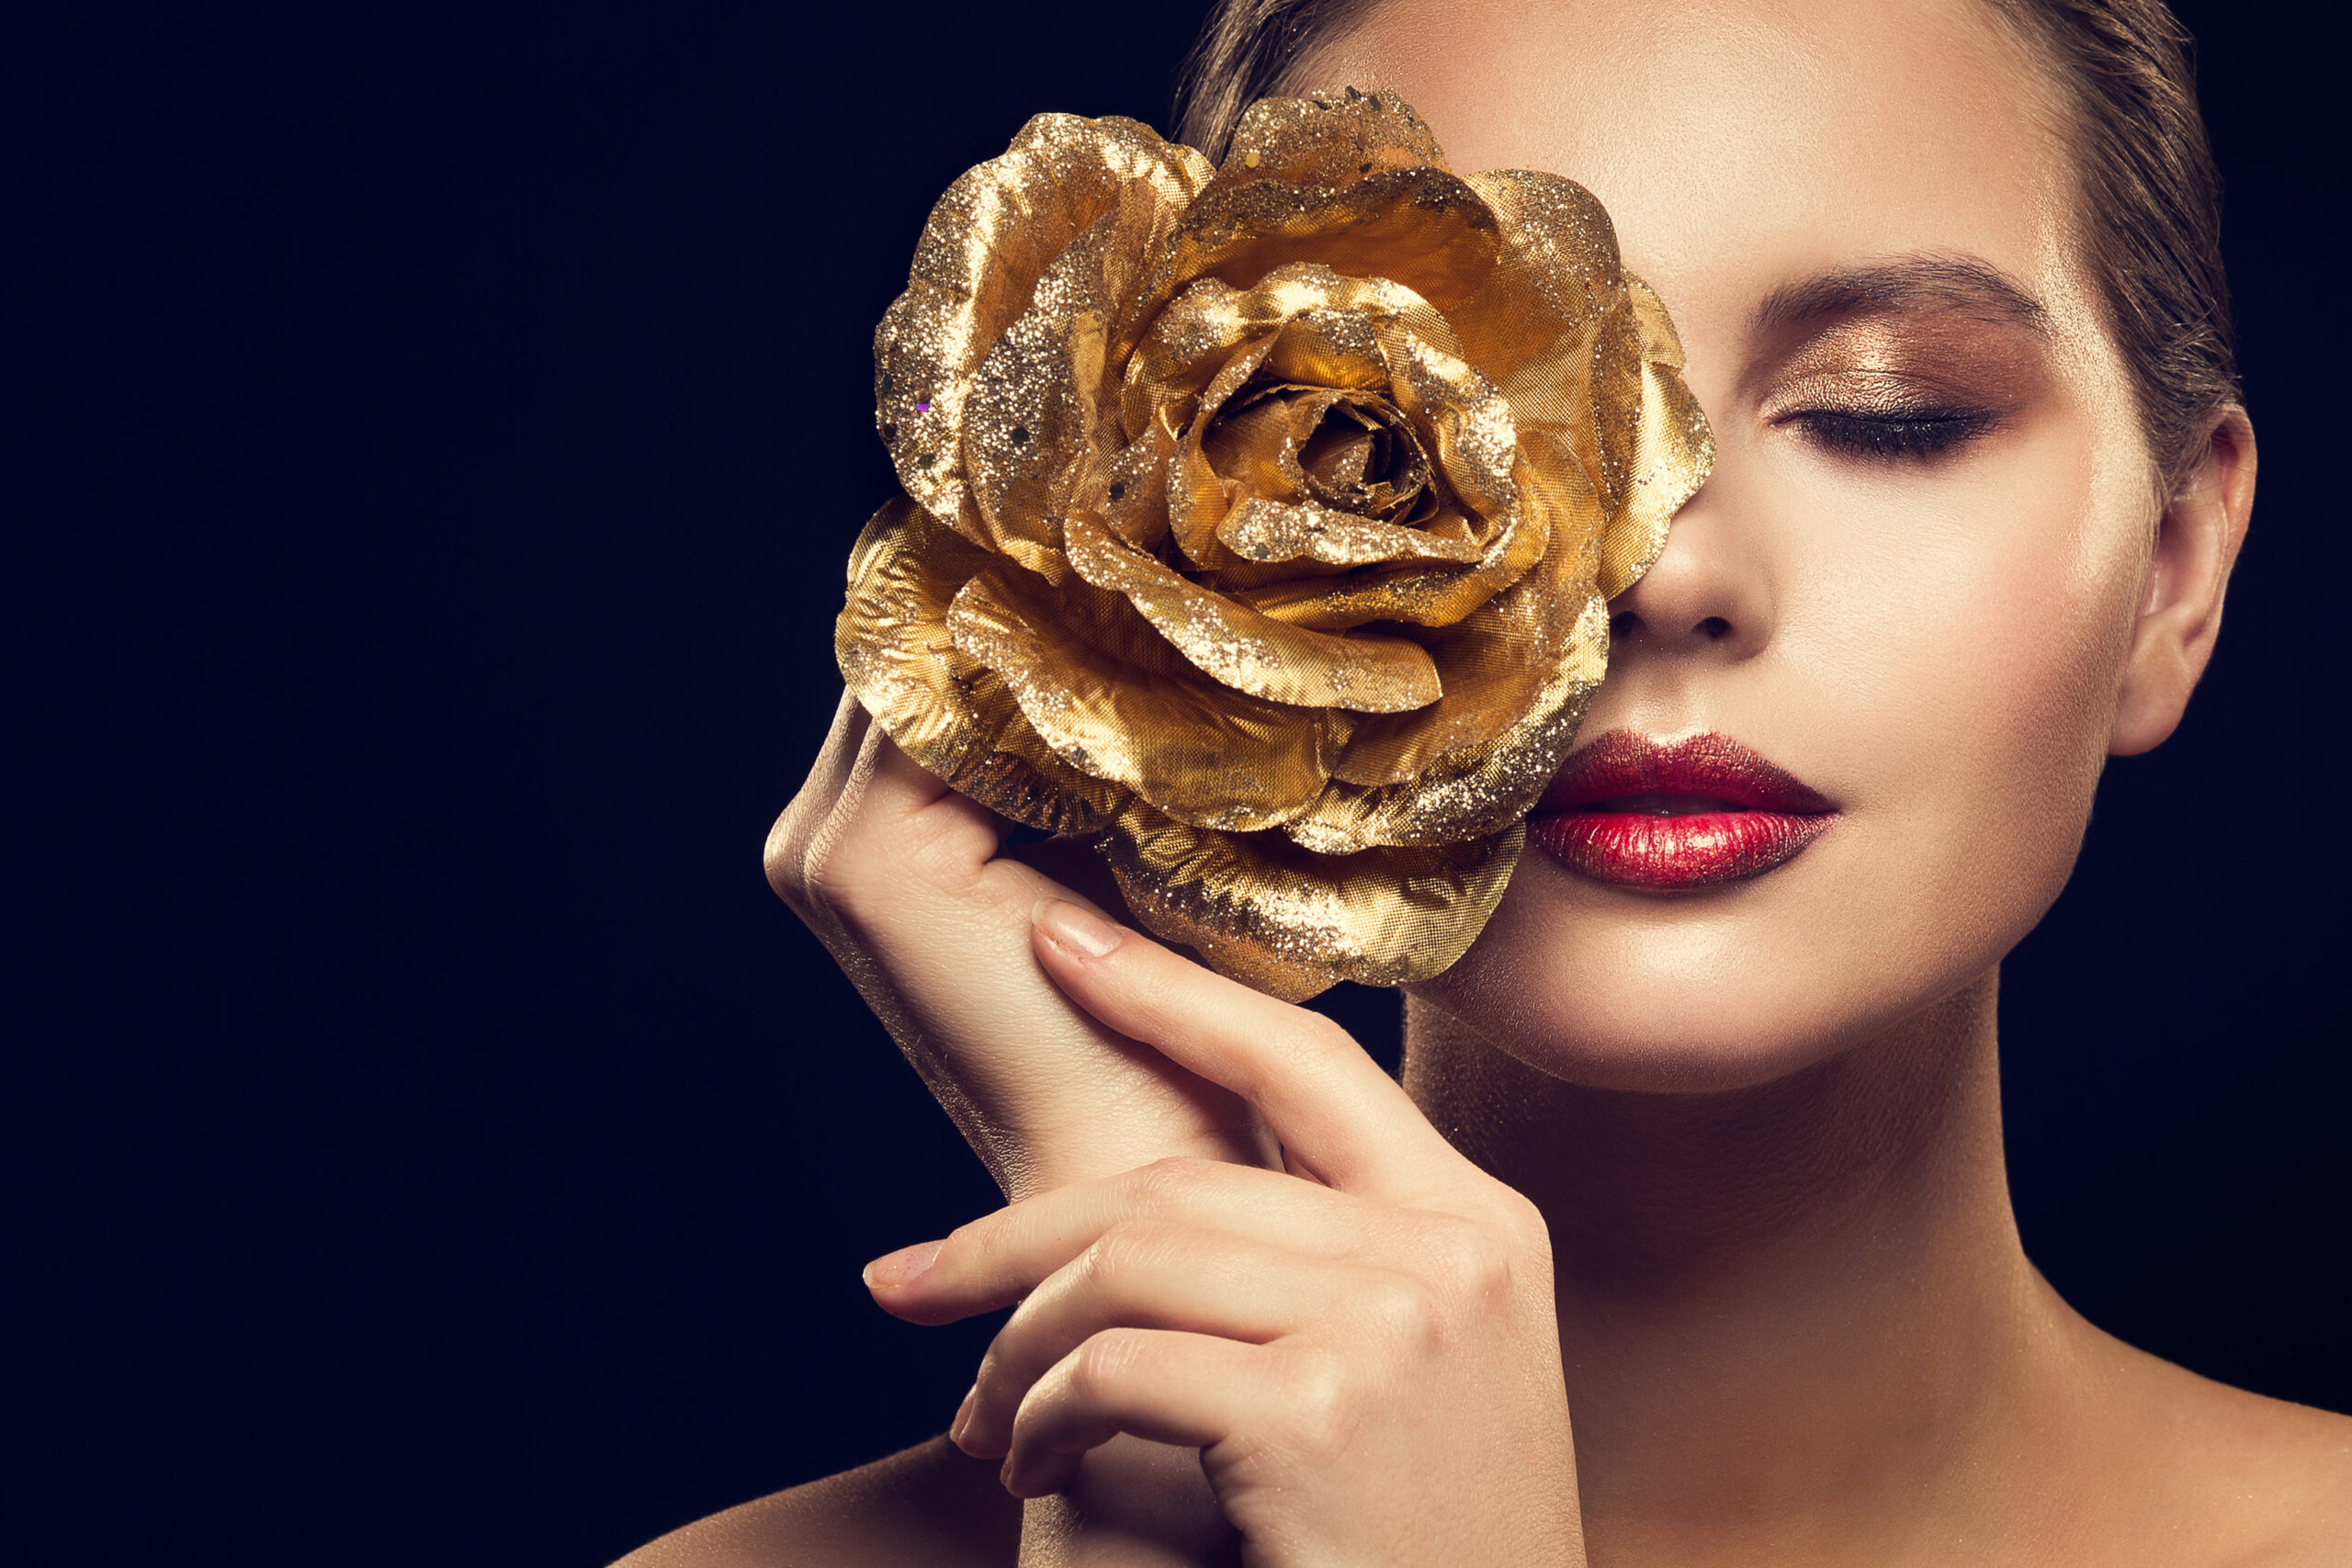 Women With Breast Cancer - Woman With Gold Flower Over Eye